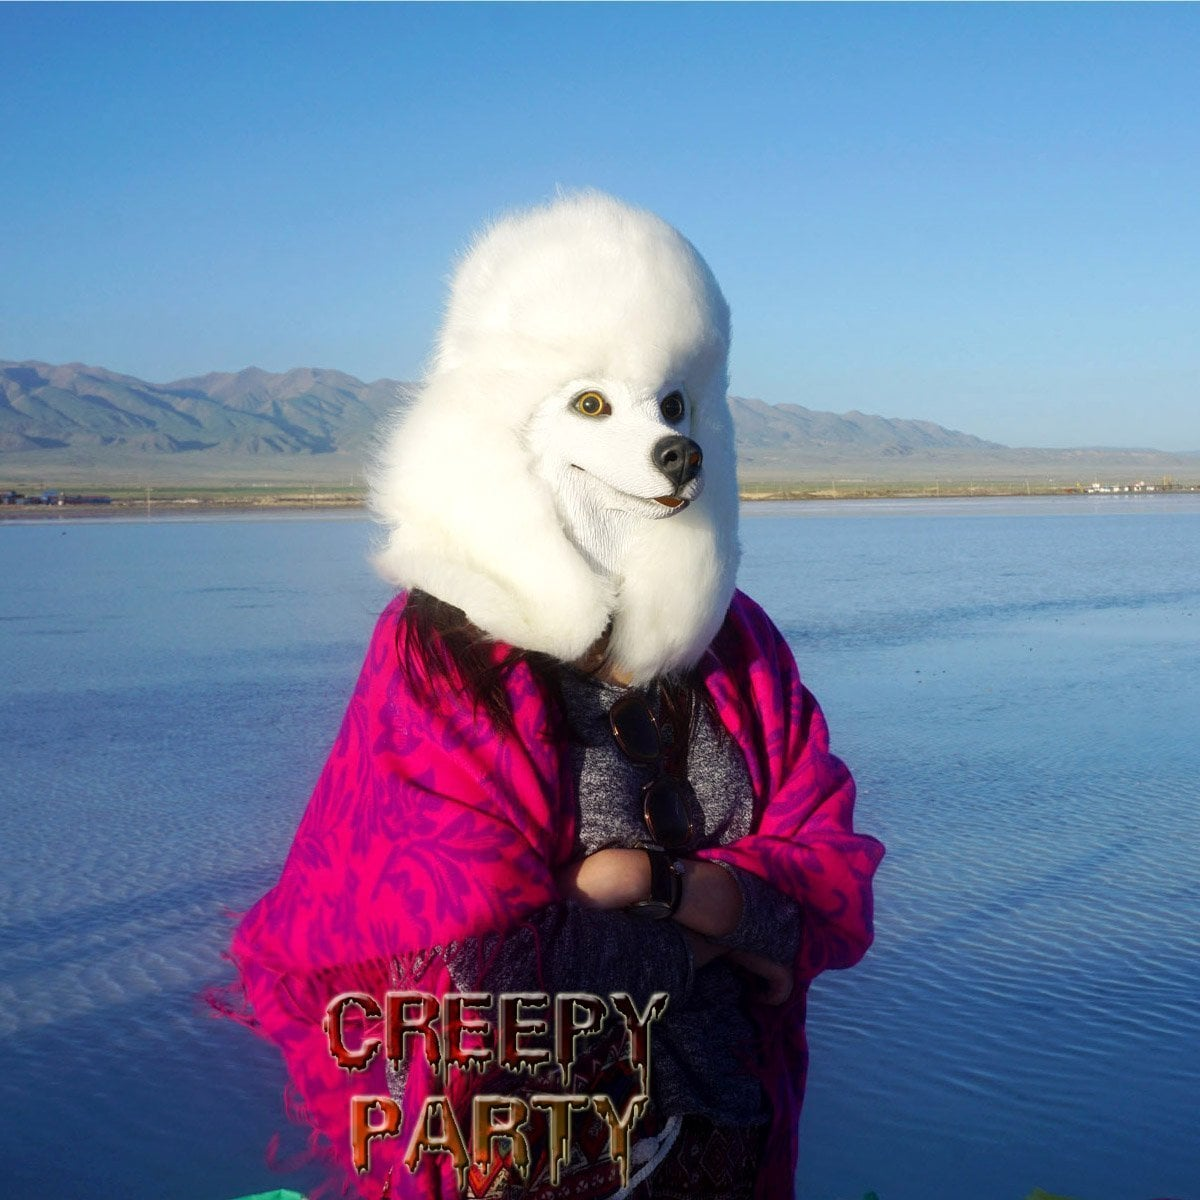 Take Your Creepy Pet Obsession to New Heights With This Real-Looking Poodle Mask